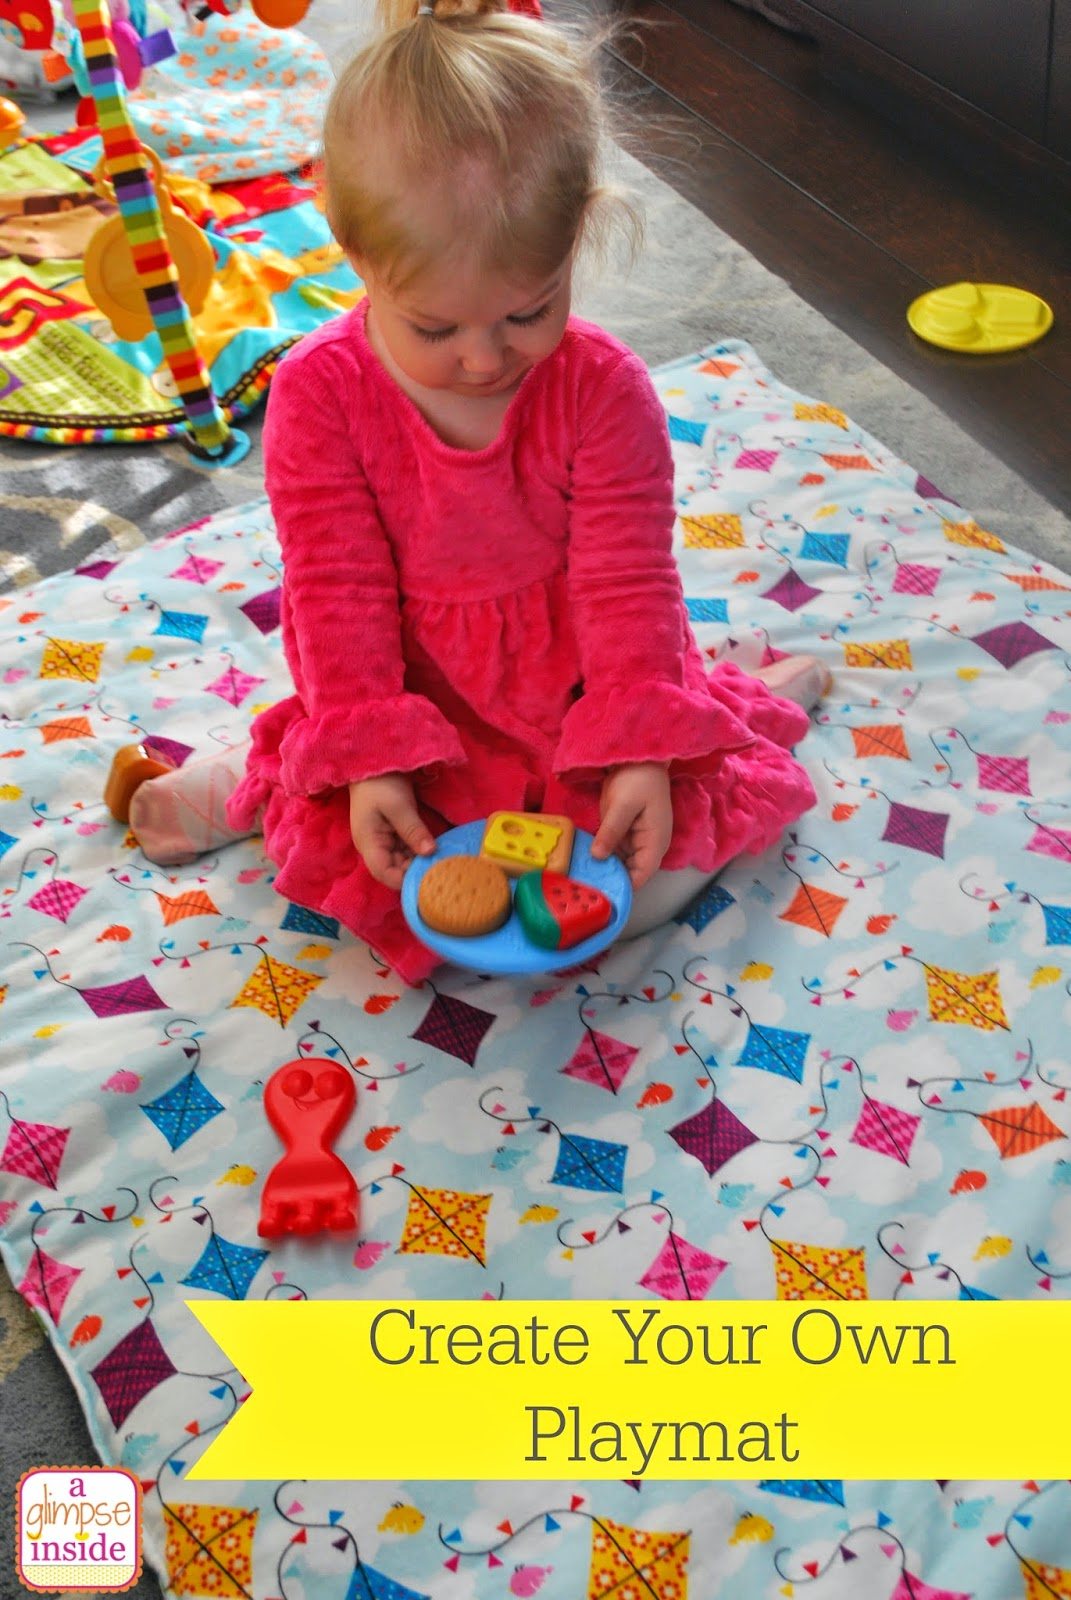 http://www.aglimpseinsideblog.com/2014/04/create-your-own-playmat.html